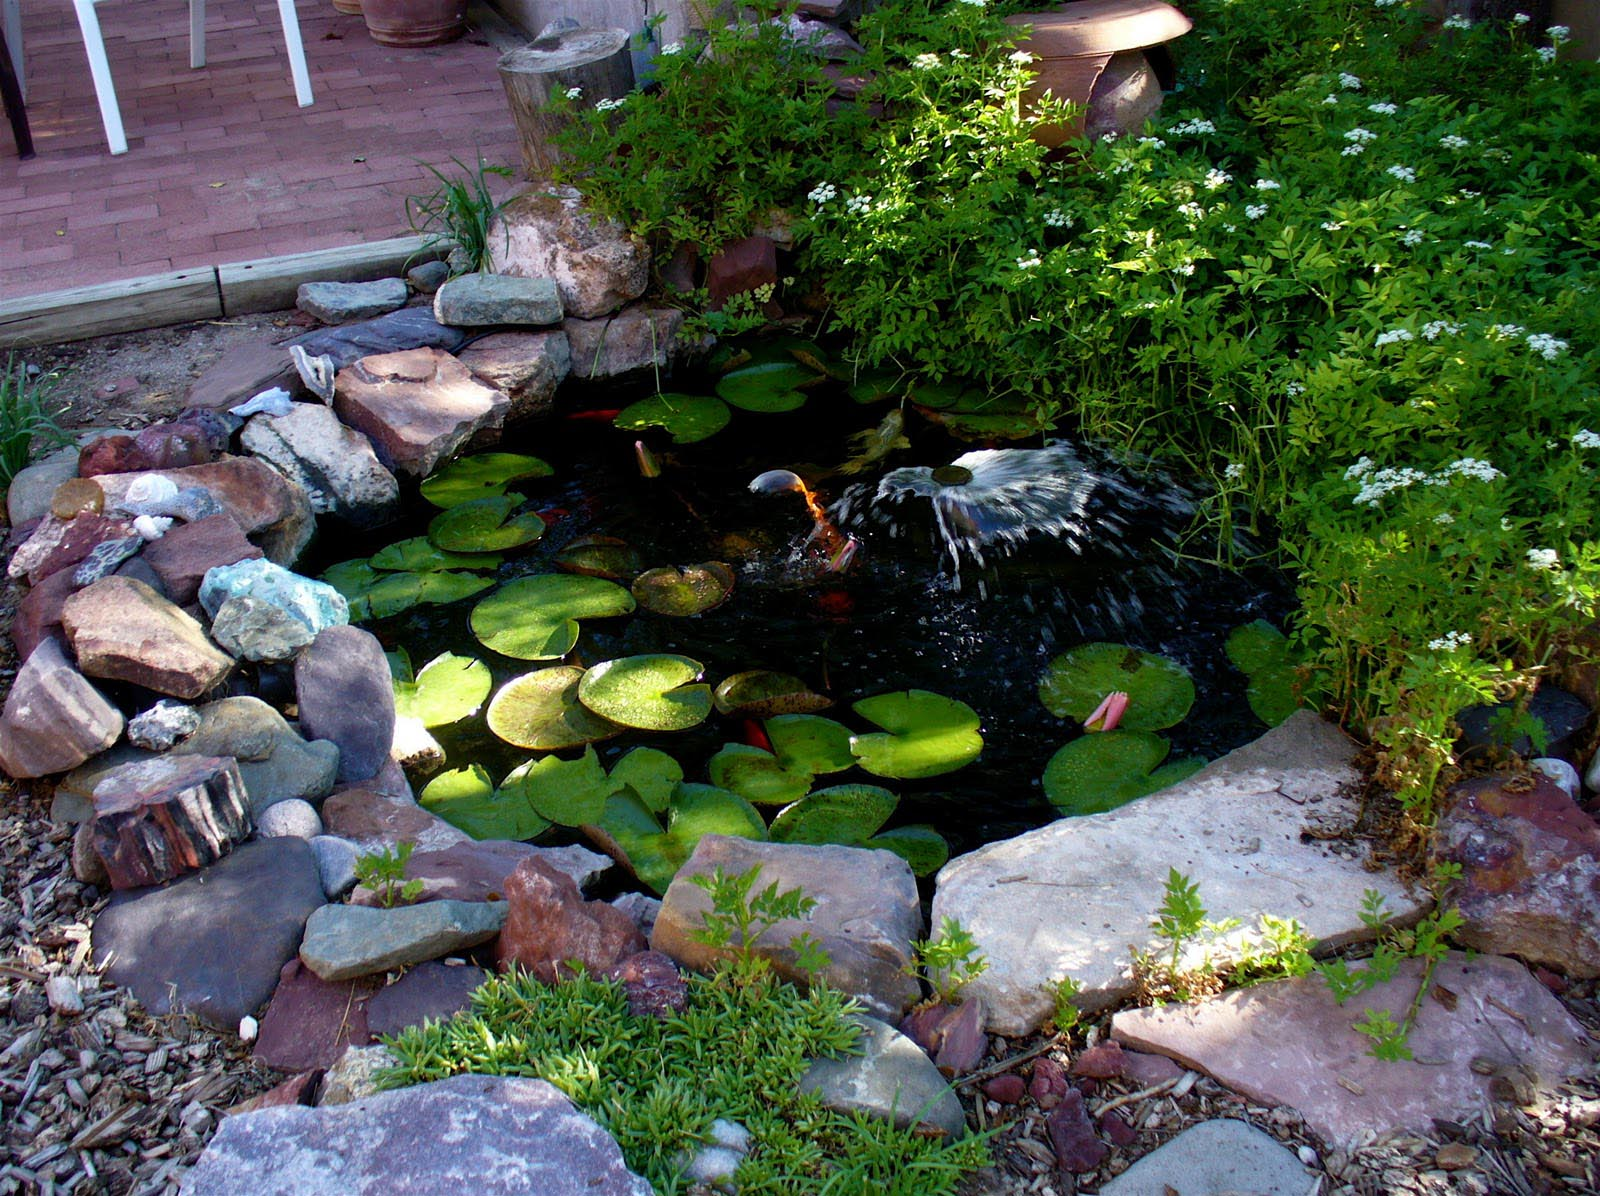 Garden fish pond ideas backyard design ideas for Pond ideas for small yards